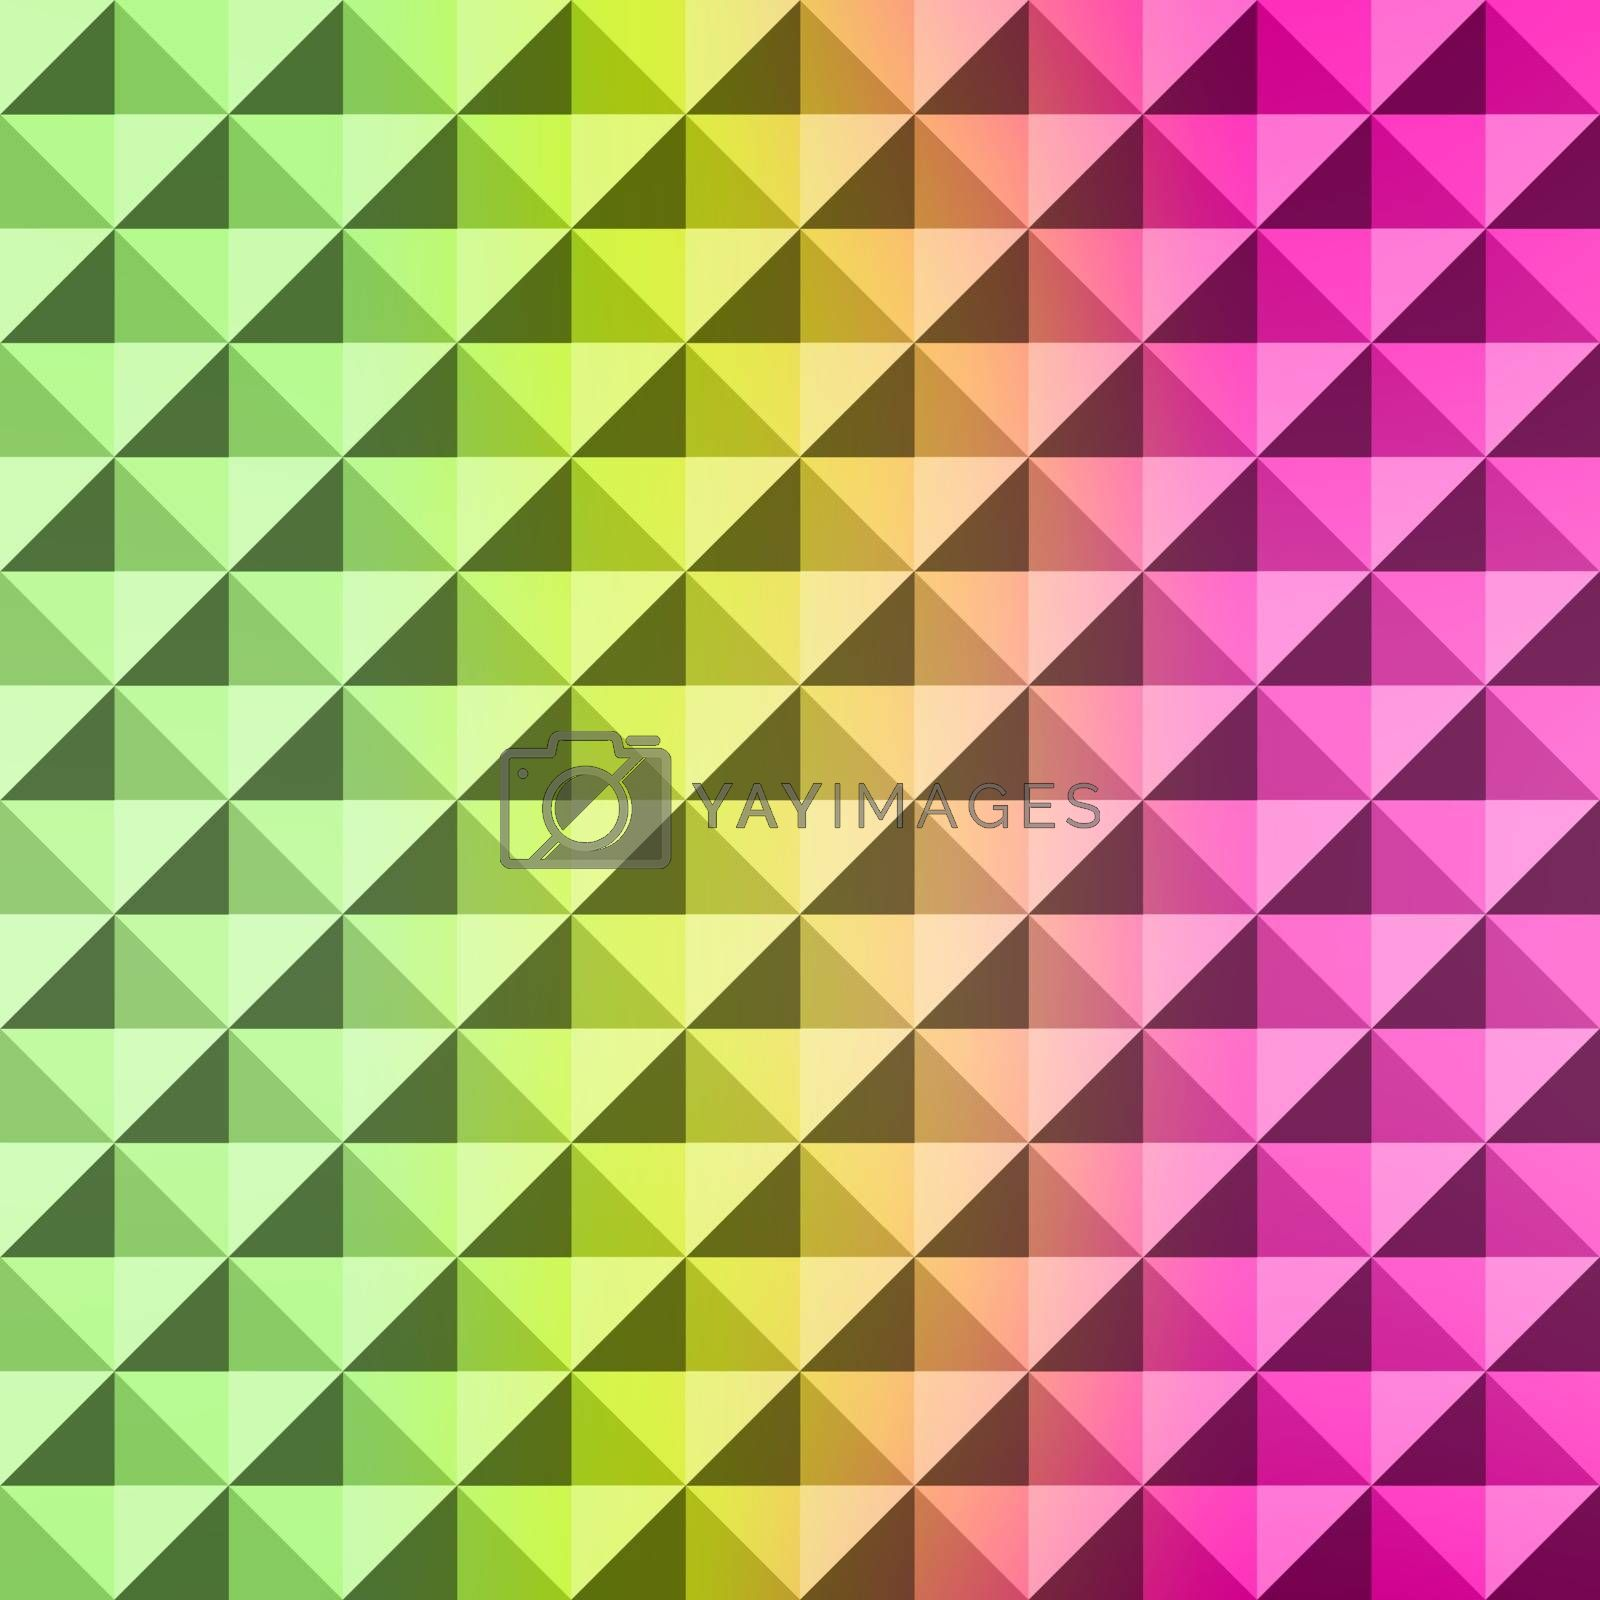 Abstract geometric background. Mosaic. Vector illustration.  by login